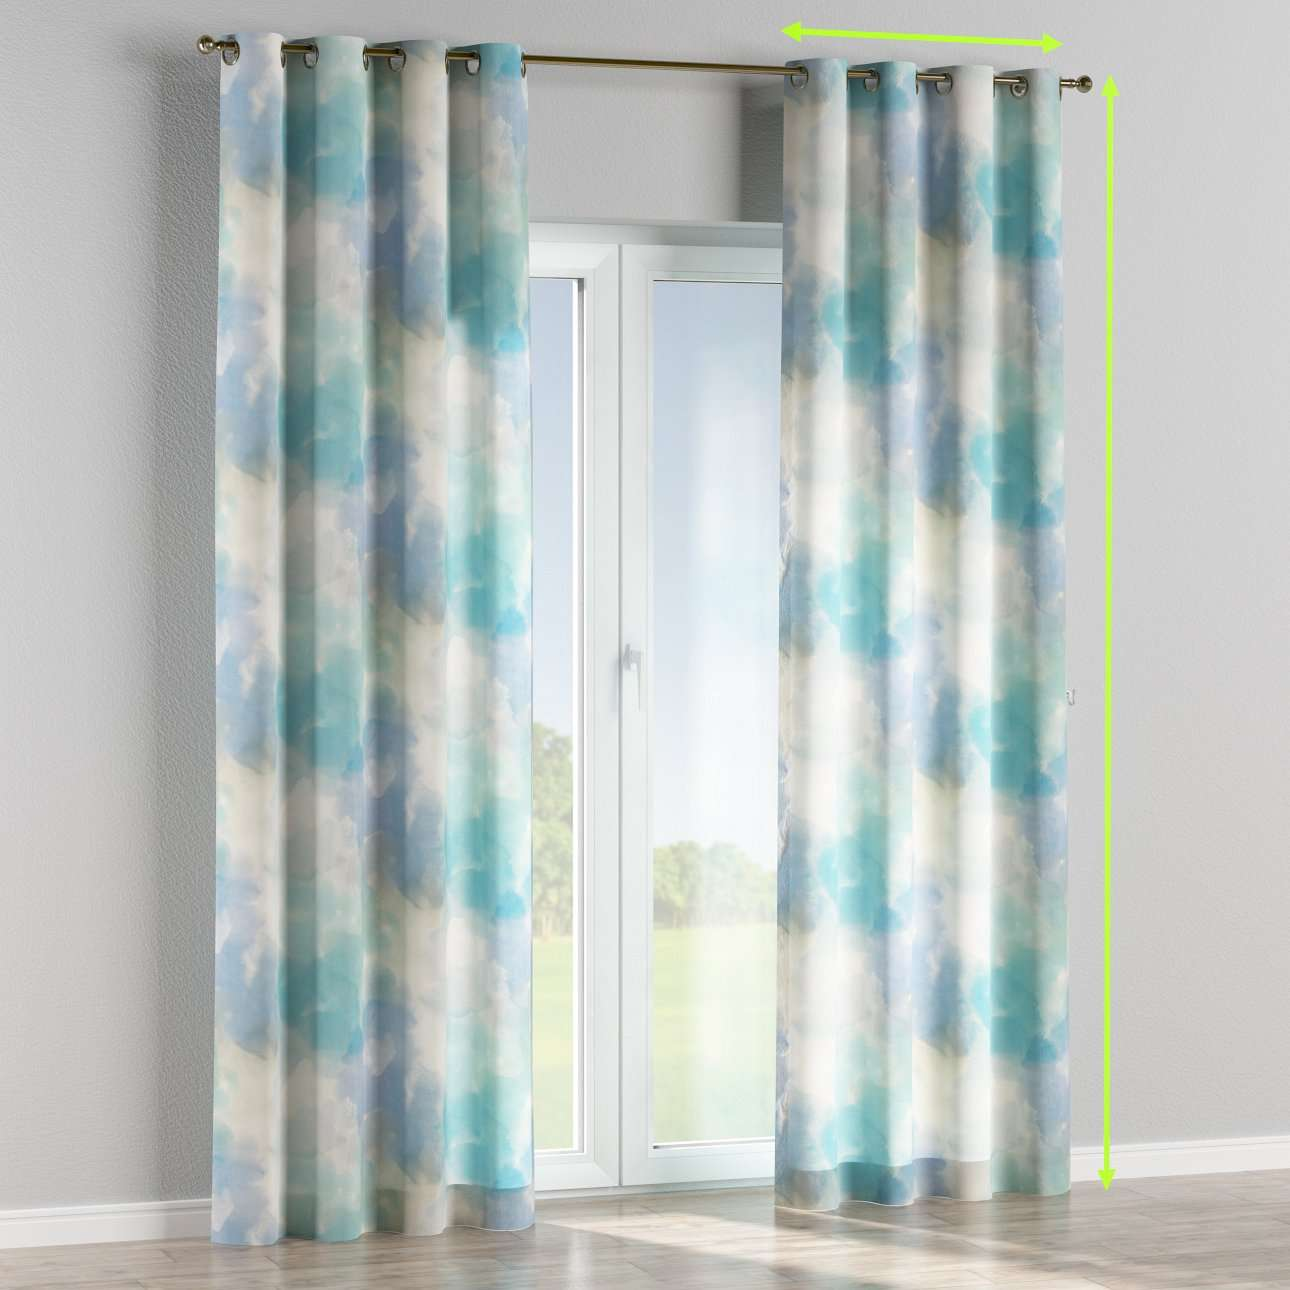 Eyelet curtains in collection Aquarelle, fabric: 140-67